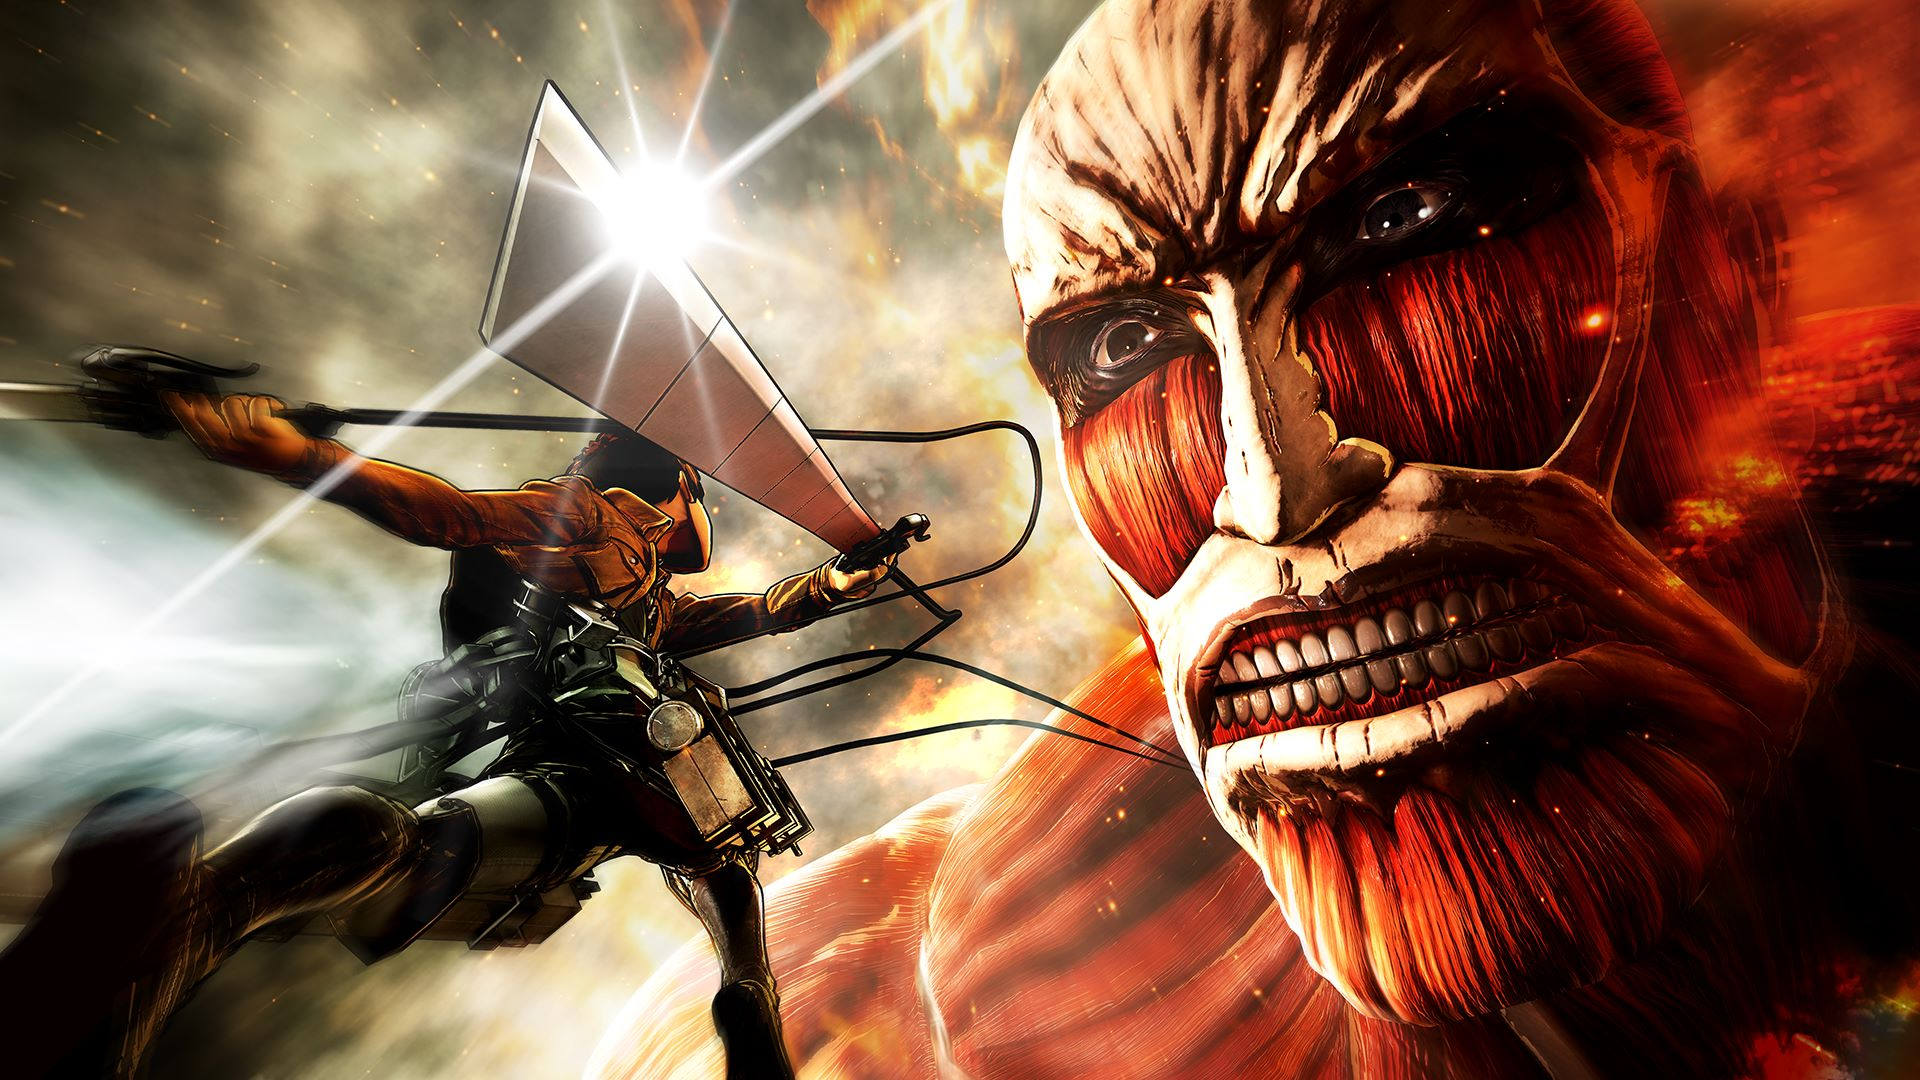 Review of Attack on Titan Episode 54